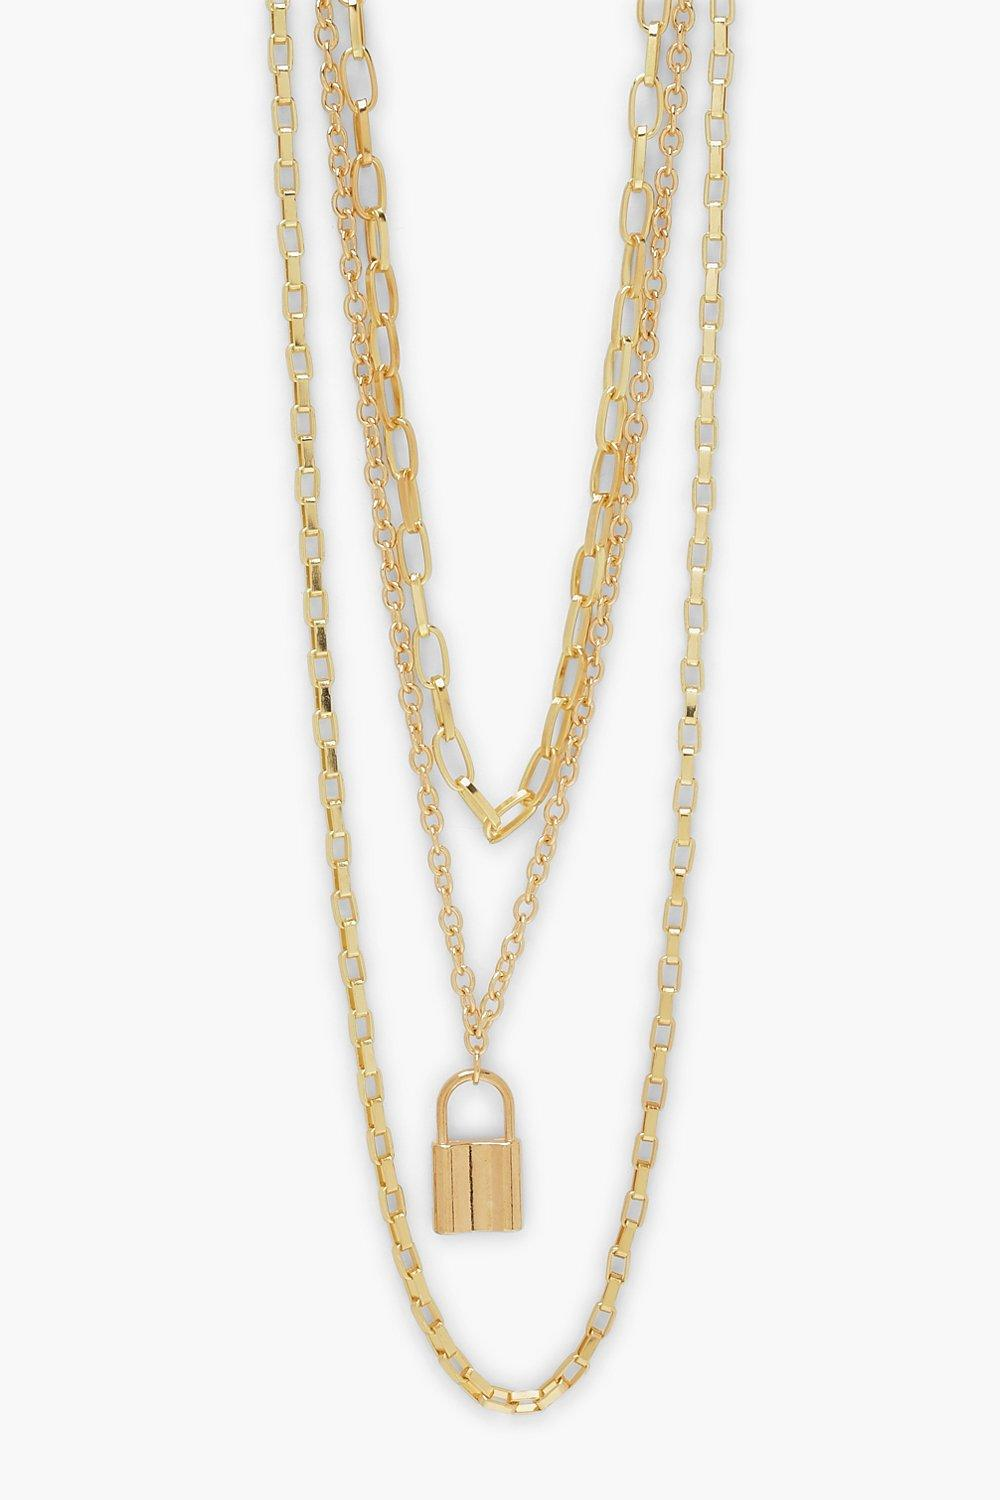 Boohoo Padlock Charm Layered Necklace, Gold